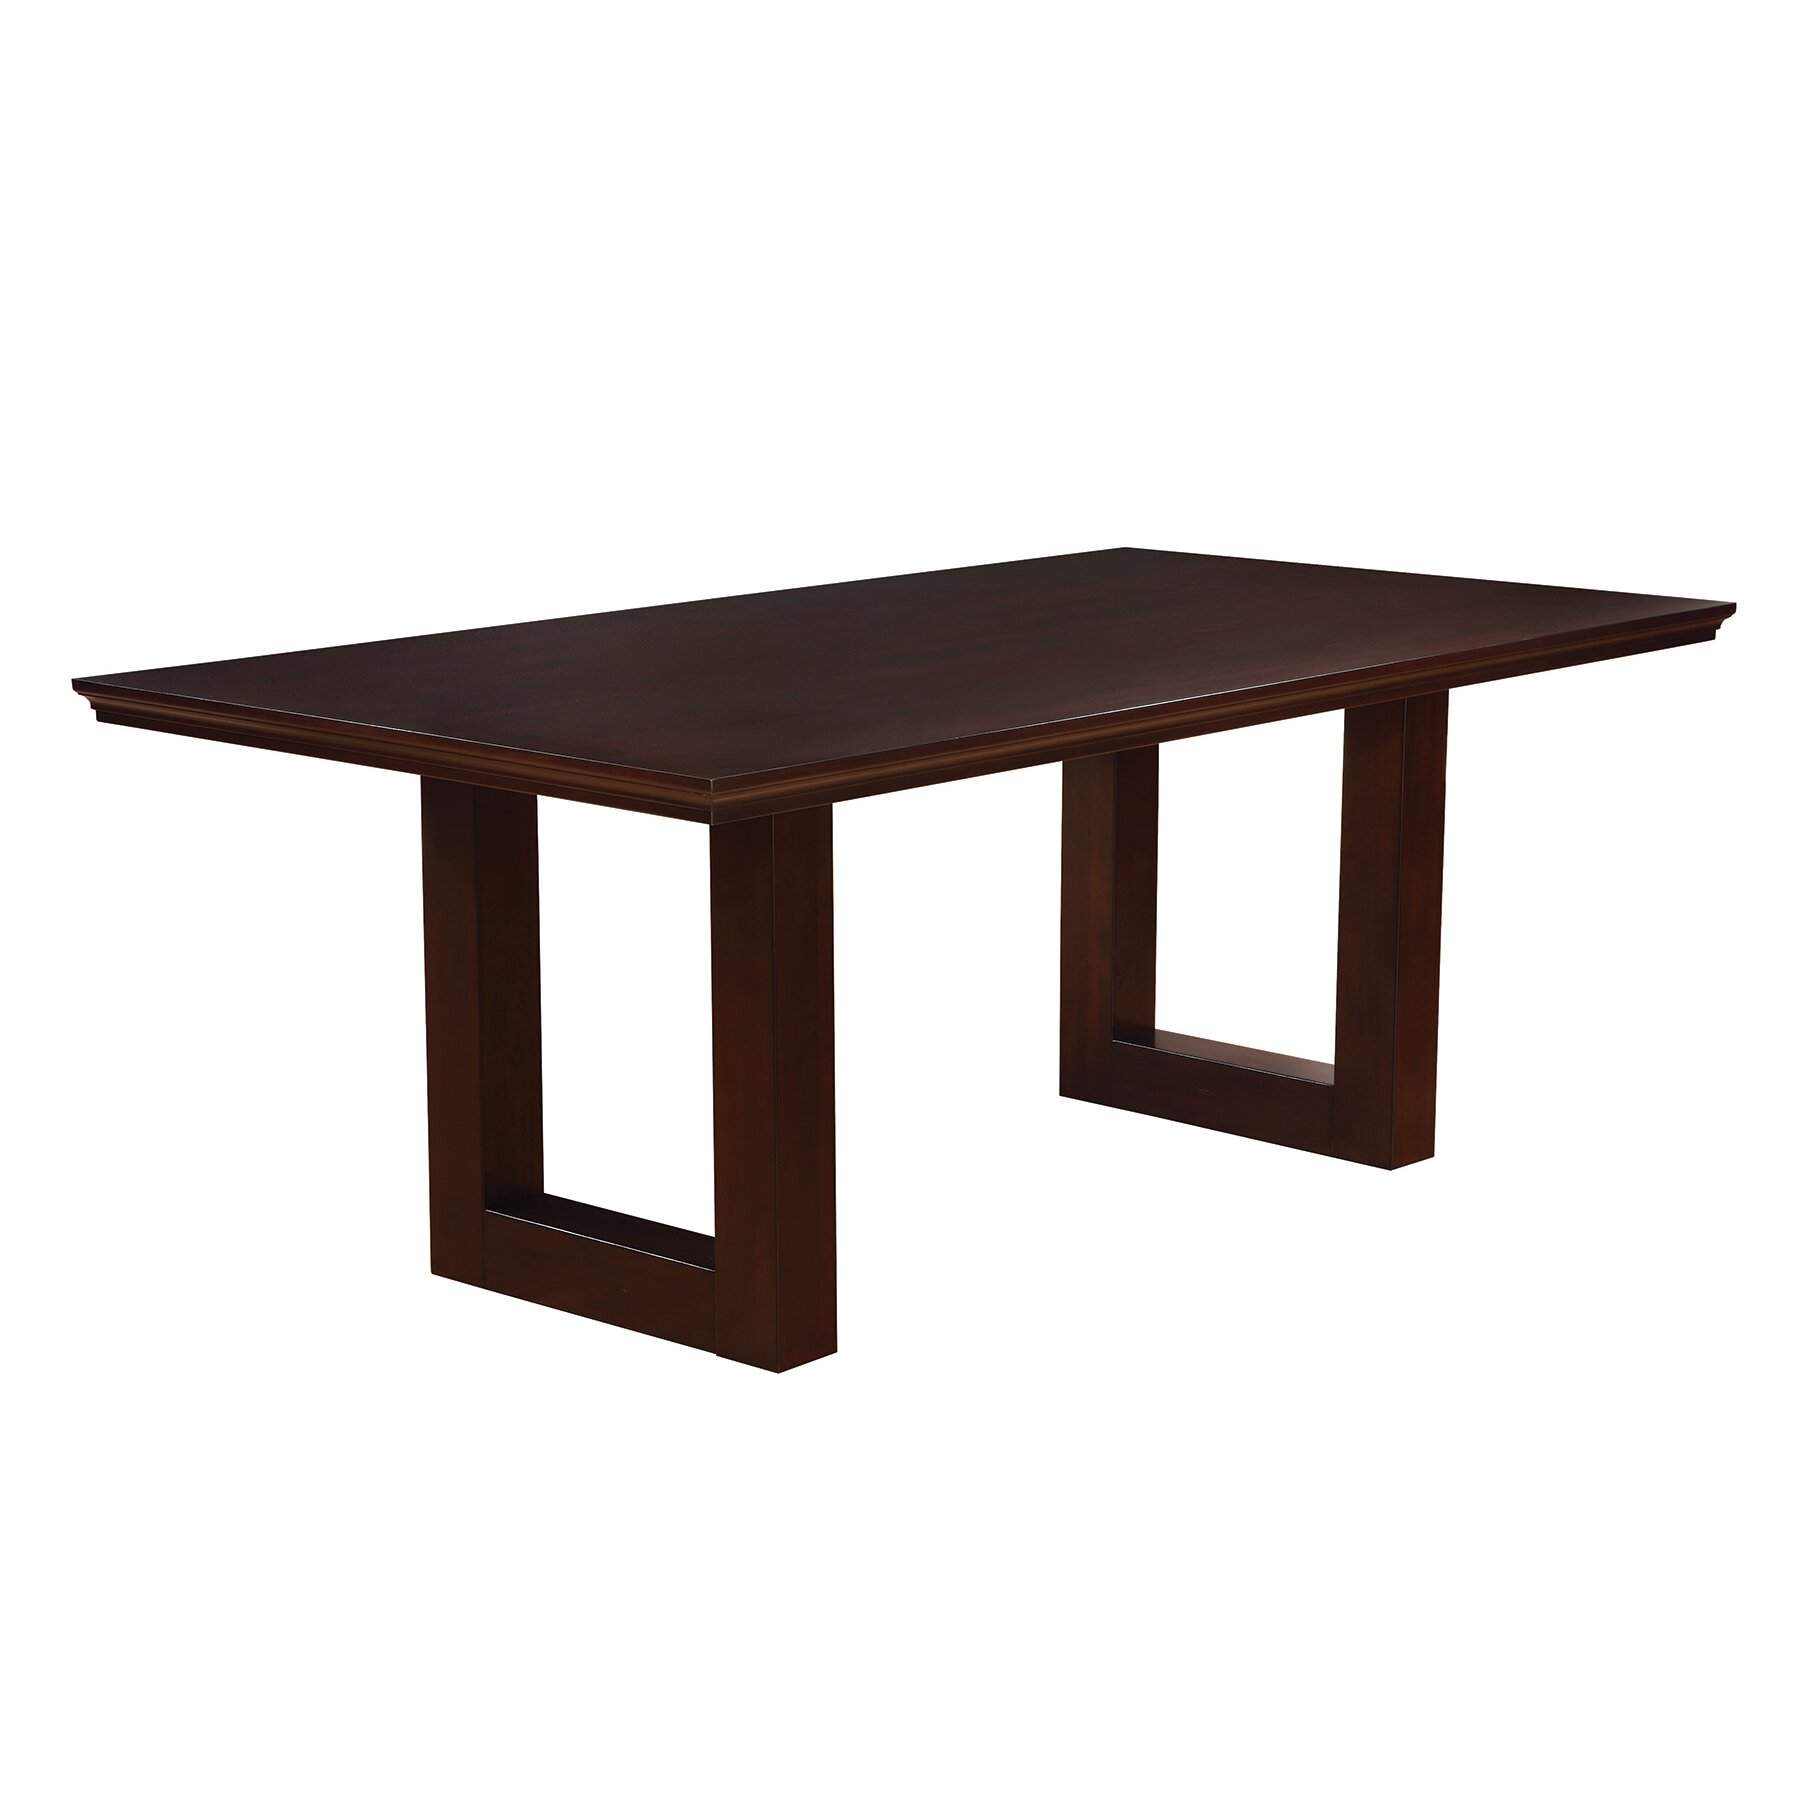 Wildon home chester group counter height dining table for Latest model dining table designs